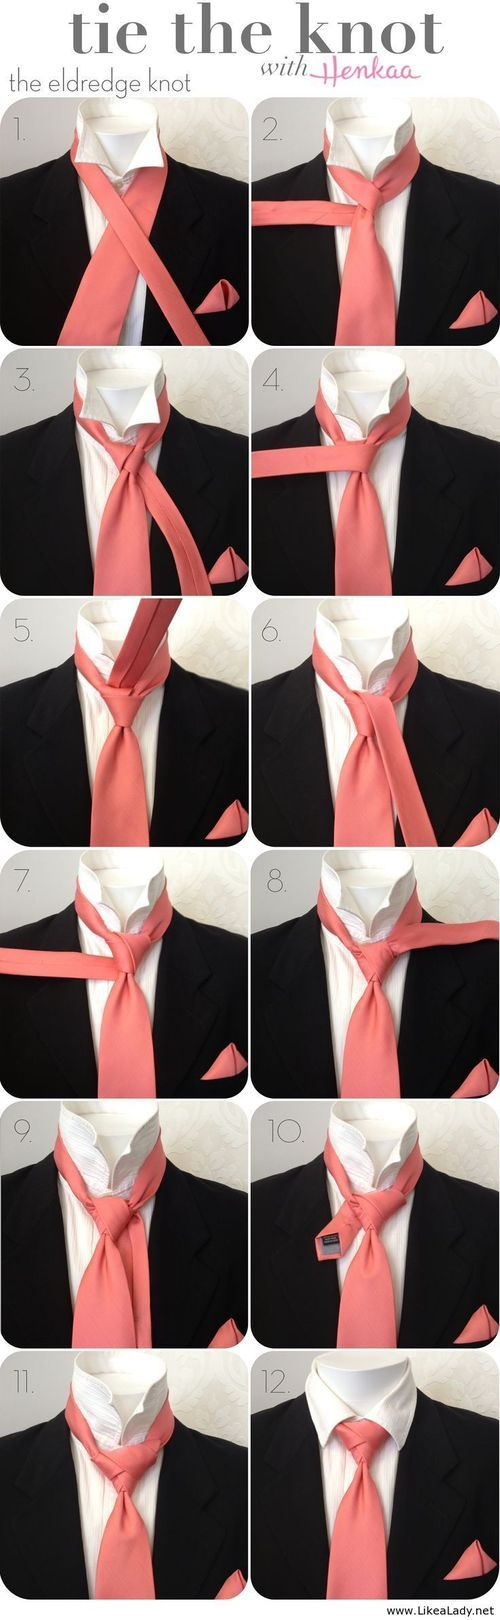 Tie the knot for the man you love - LikeaLady.net on imgfave